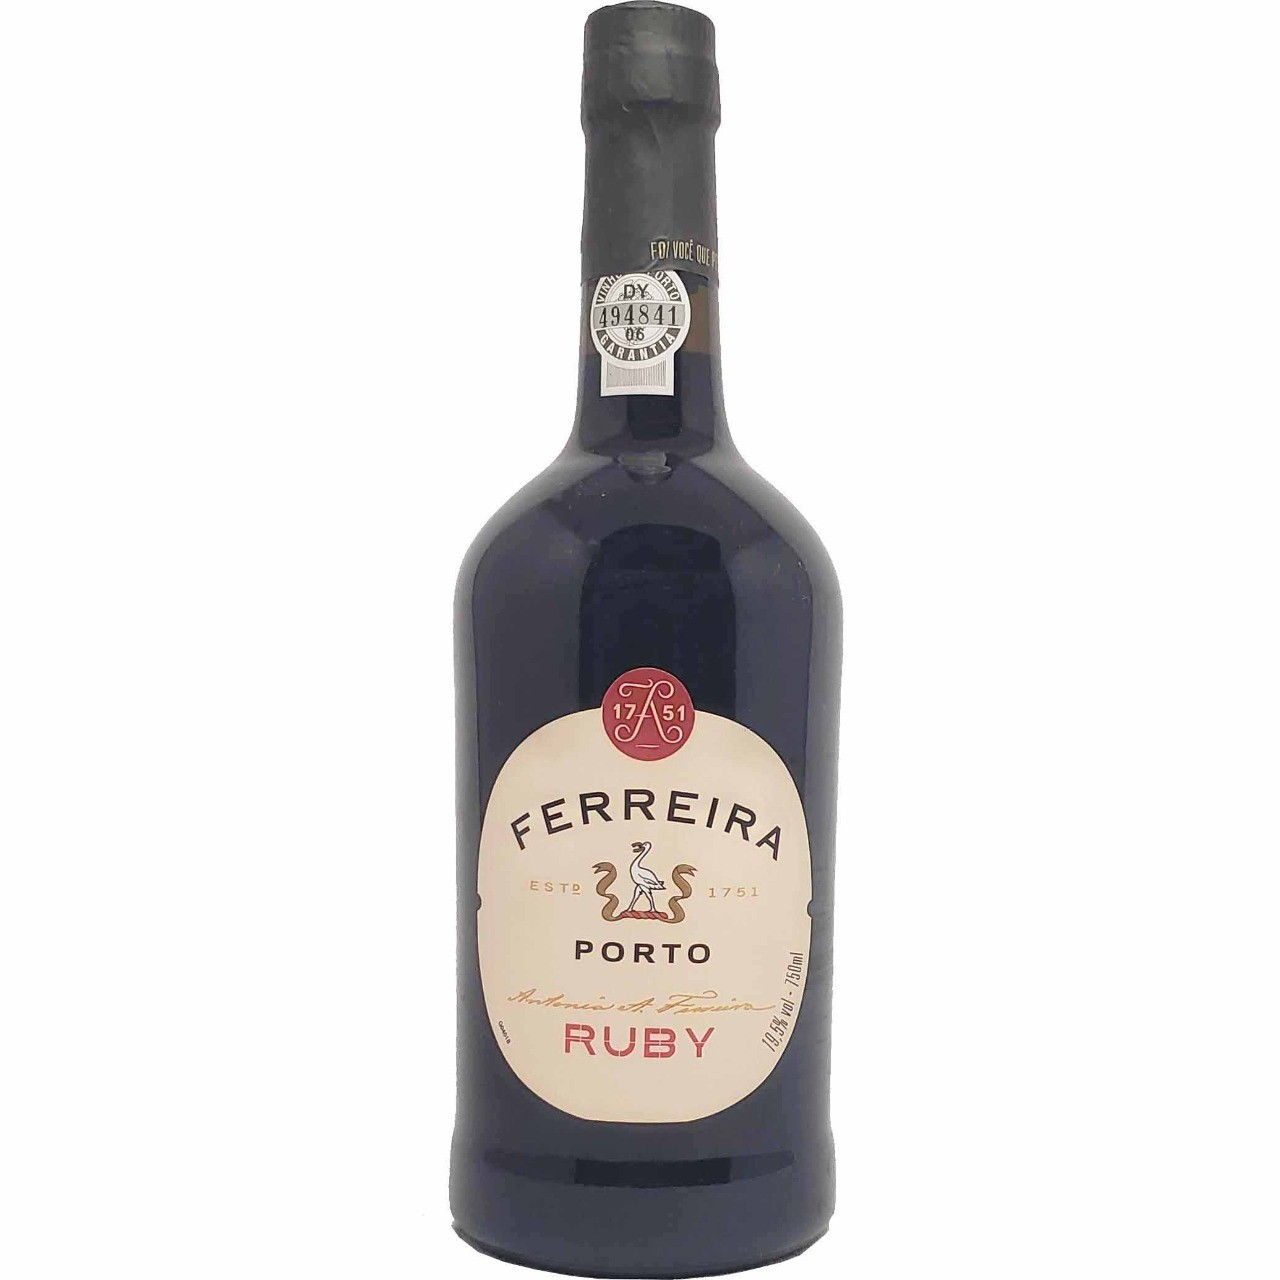 Vinho Tinto do Porto Ferreira Ruby - 750ml -